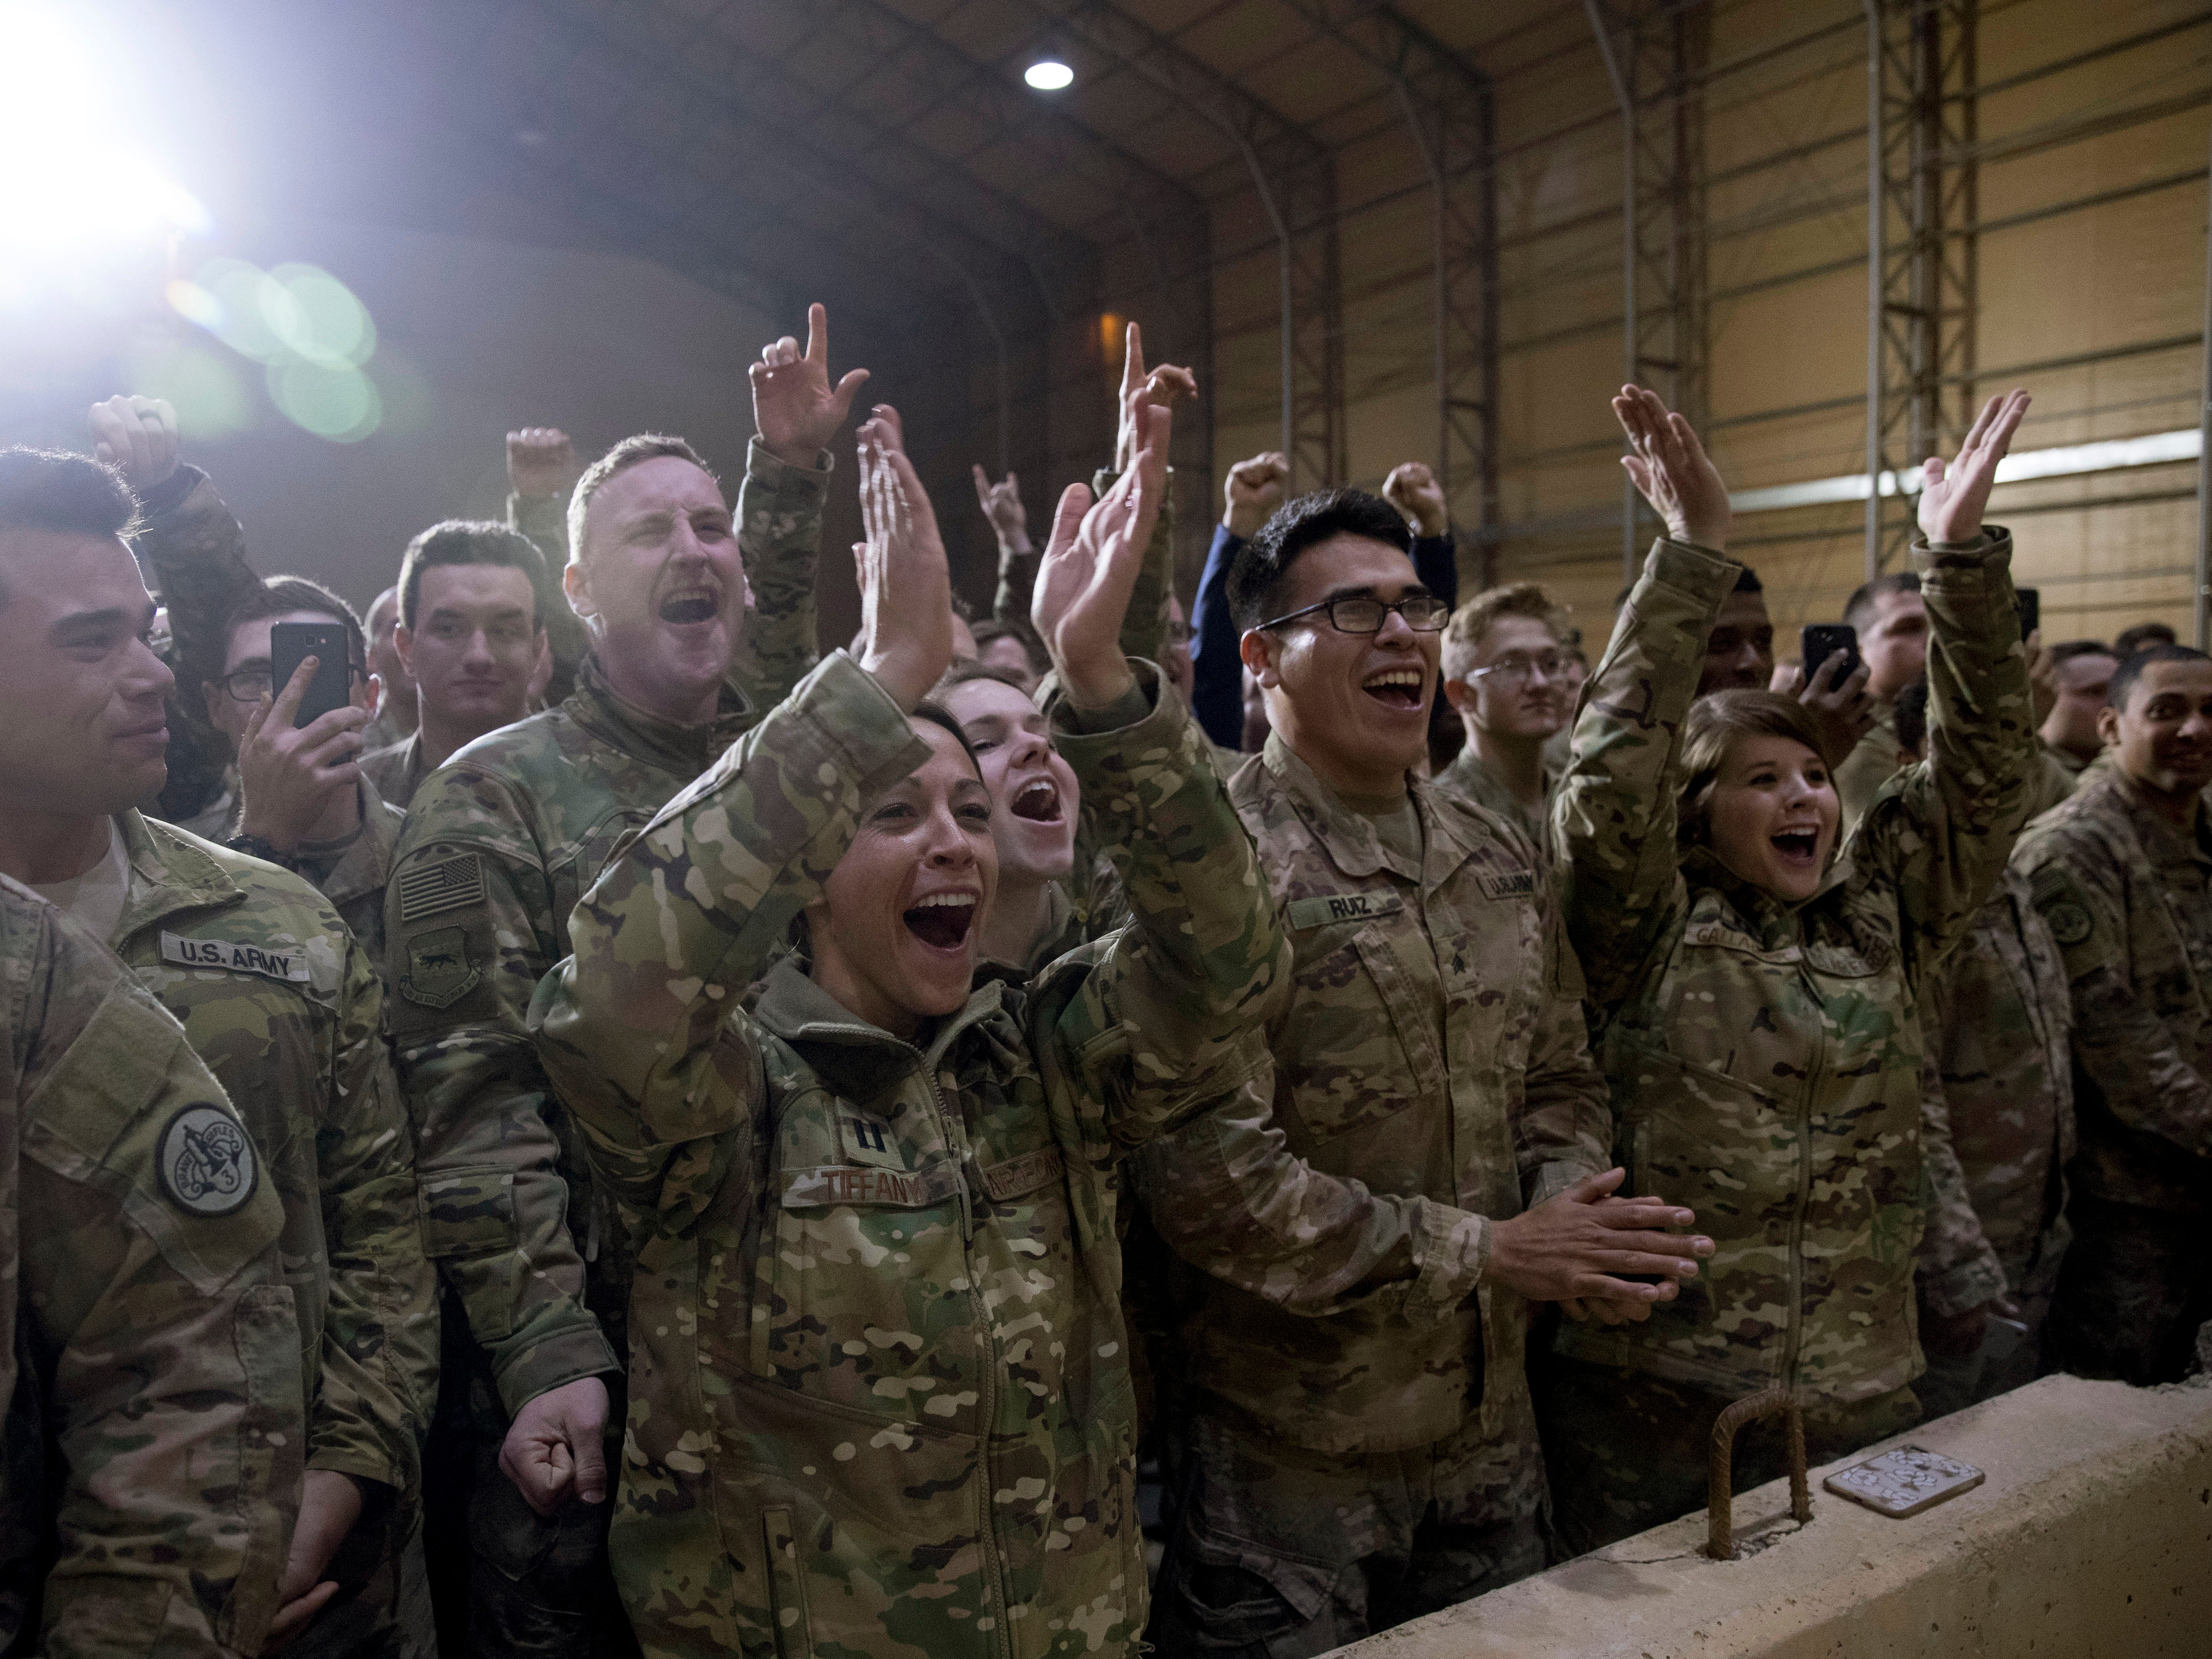 Members of the military cheer as President Donald Trump speaks at a hanger rally at Al Asad Air Base, Iraq, Wednesday, Dec. 26, 2018. President Donald Trump, who is visiting Iraq, says he has 'no plans at all' to remove US troops from the country.  (AP Photo/Andrew Harnik) ORG XMIT: IRQA201